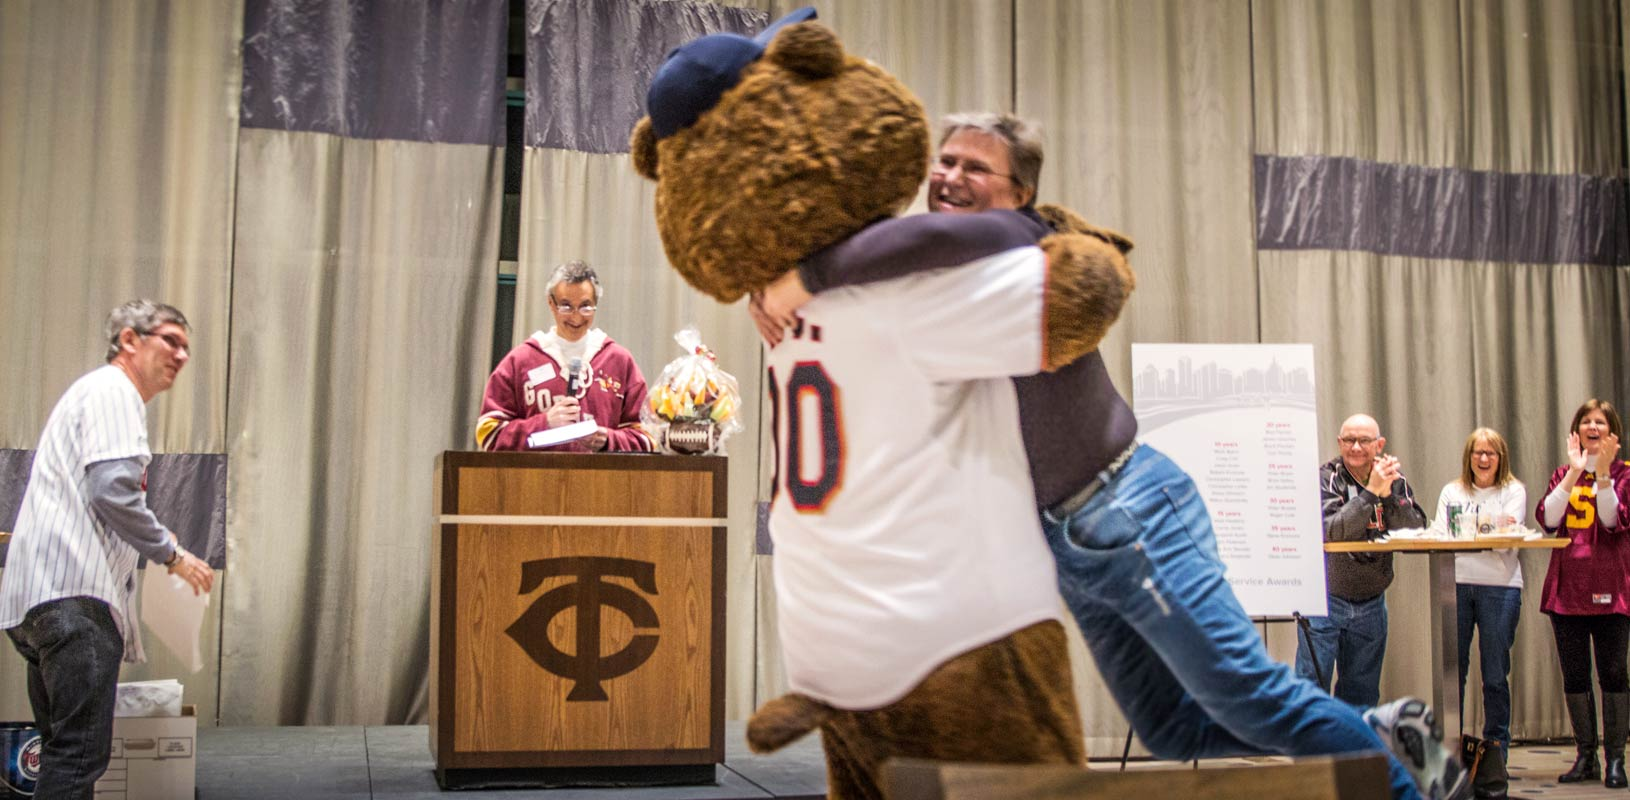 Twins TC Bear gives TKDA employee a hug